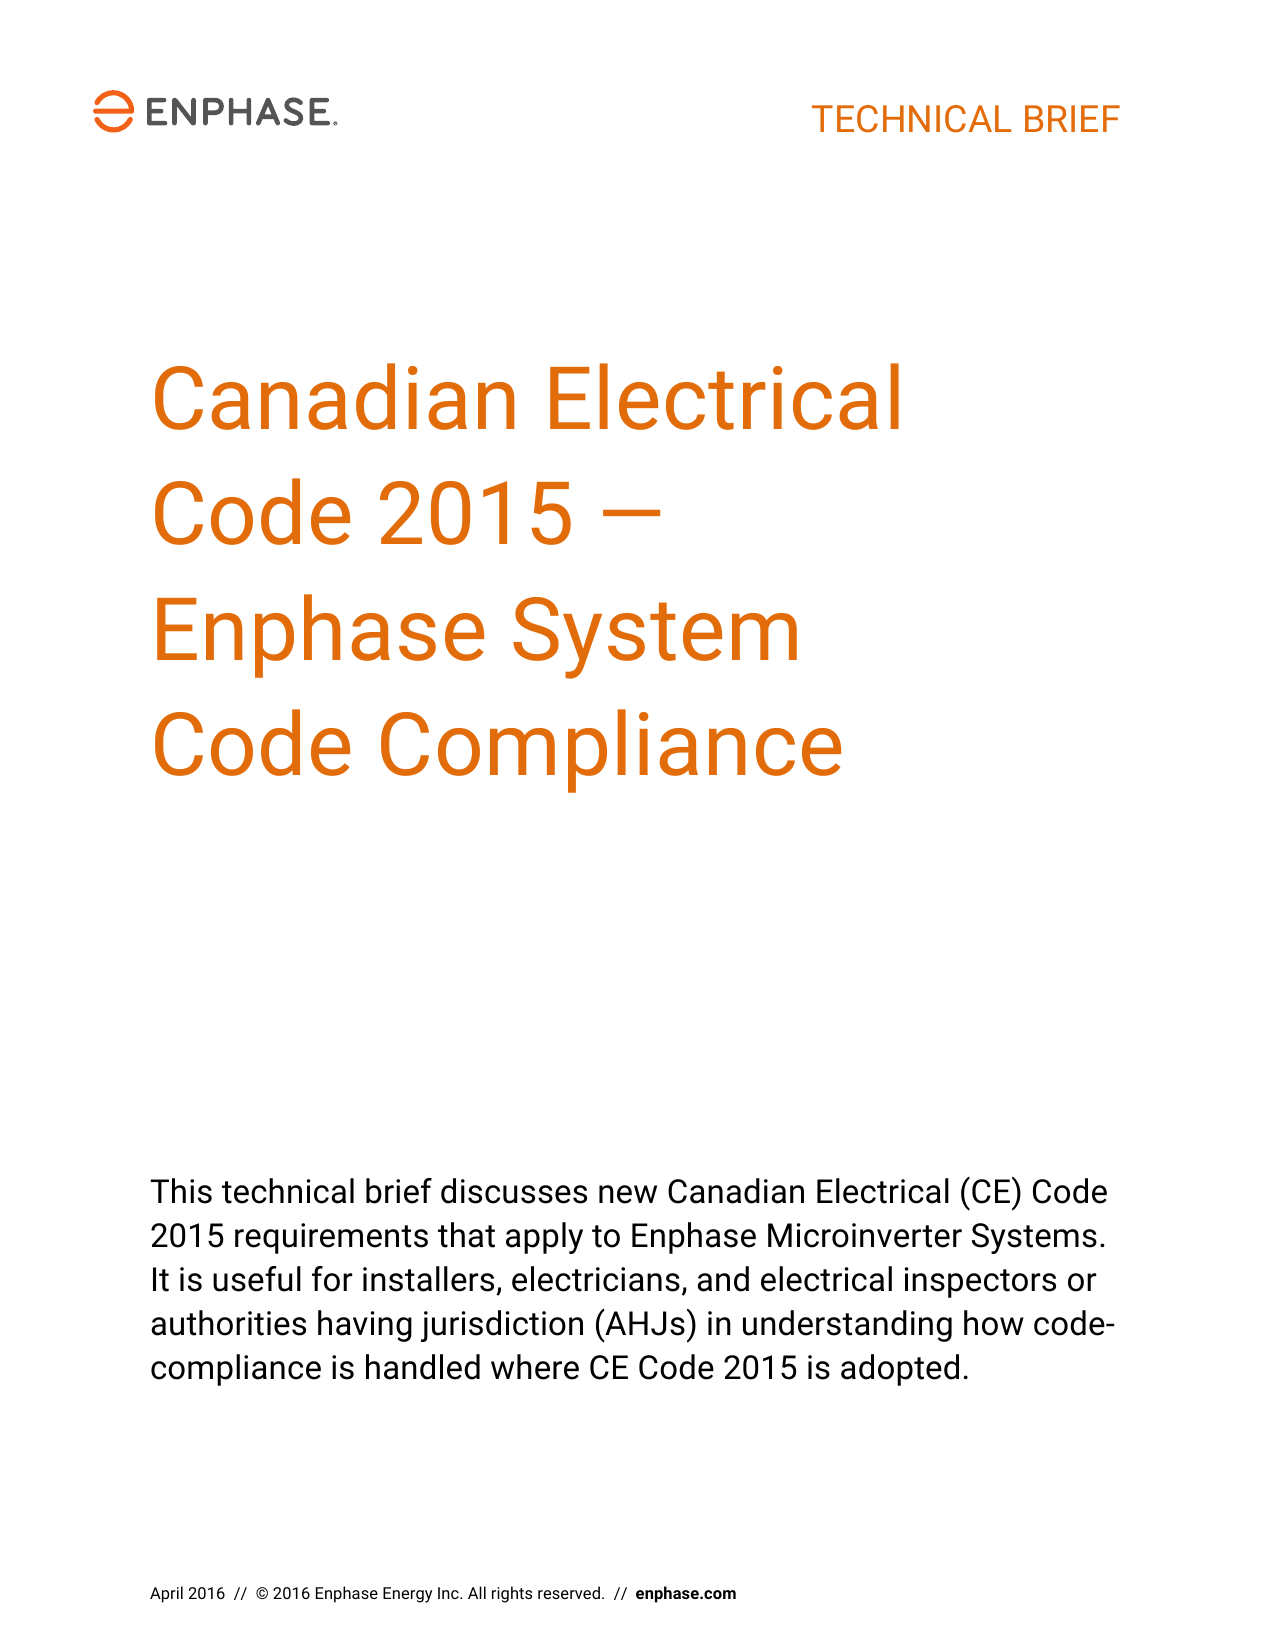 Magnificent Canadian Electrical Code For Dummies Model - Electrical ...